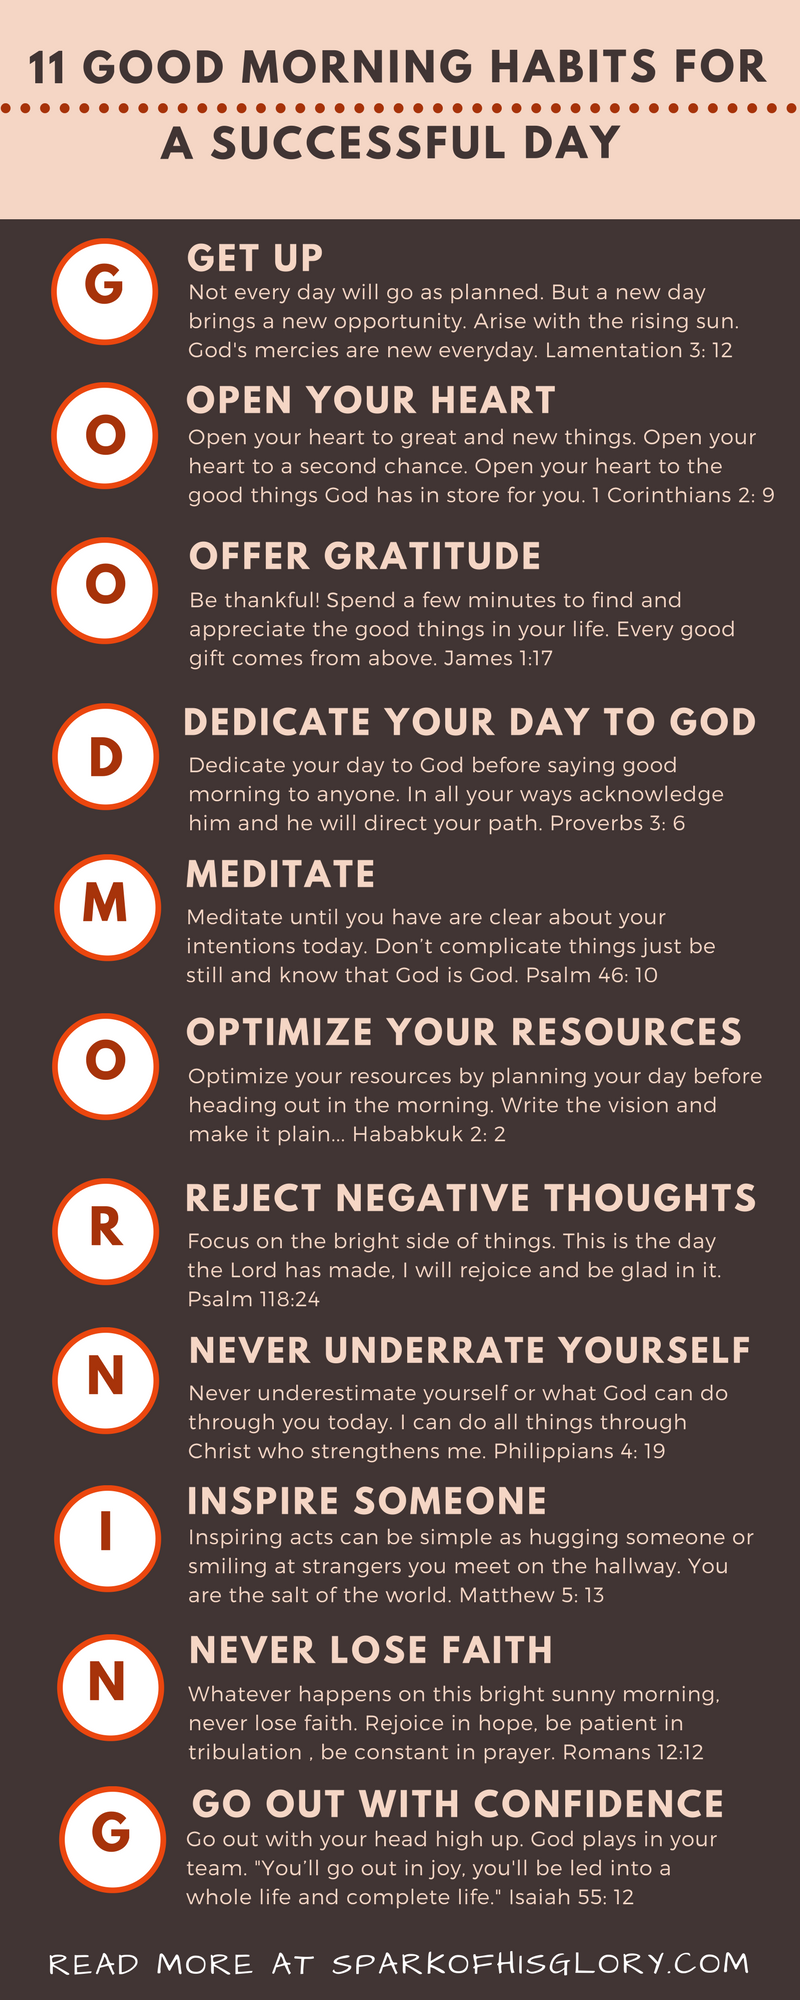 11 Good Morning Habits For A Successful Day Family Rules Guides